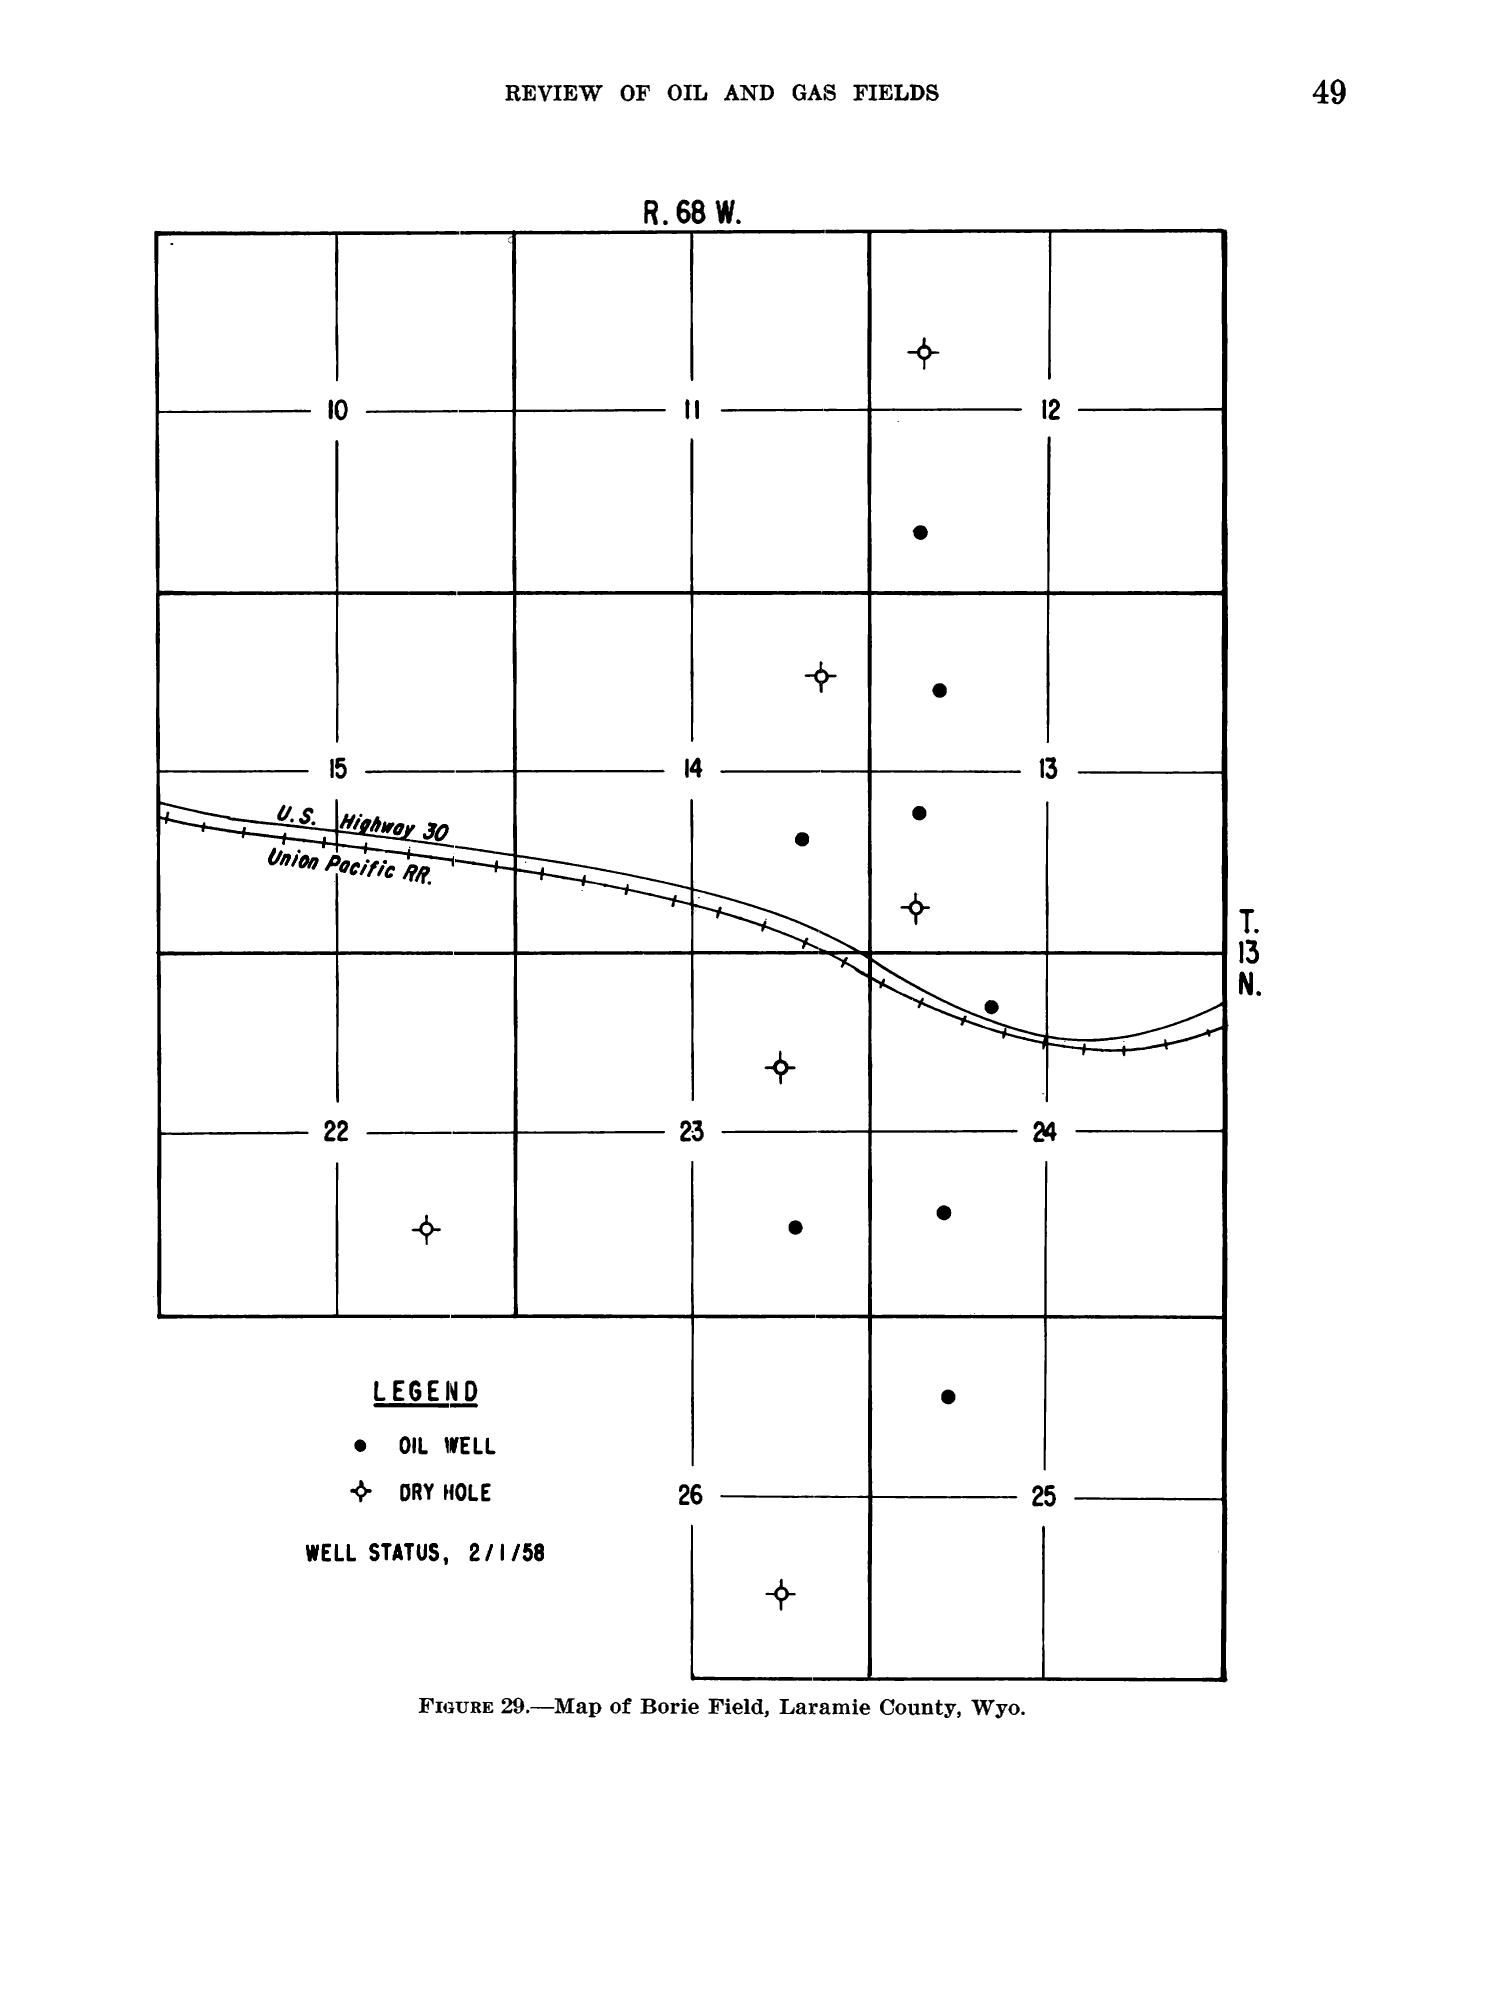 Petroleum and Natural Gas Fields in Wyoming                                                                                                      49